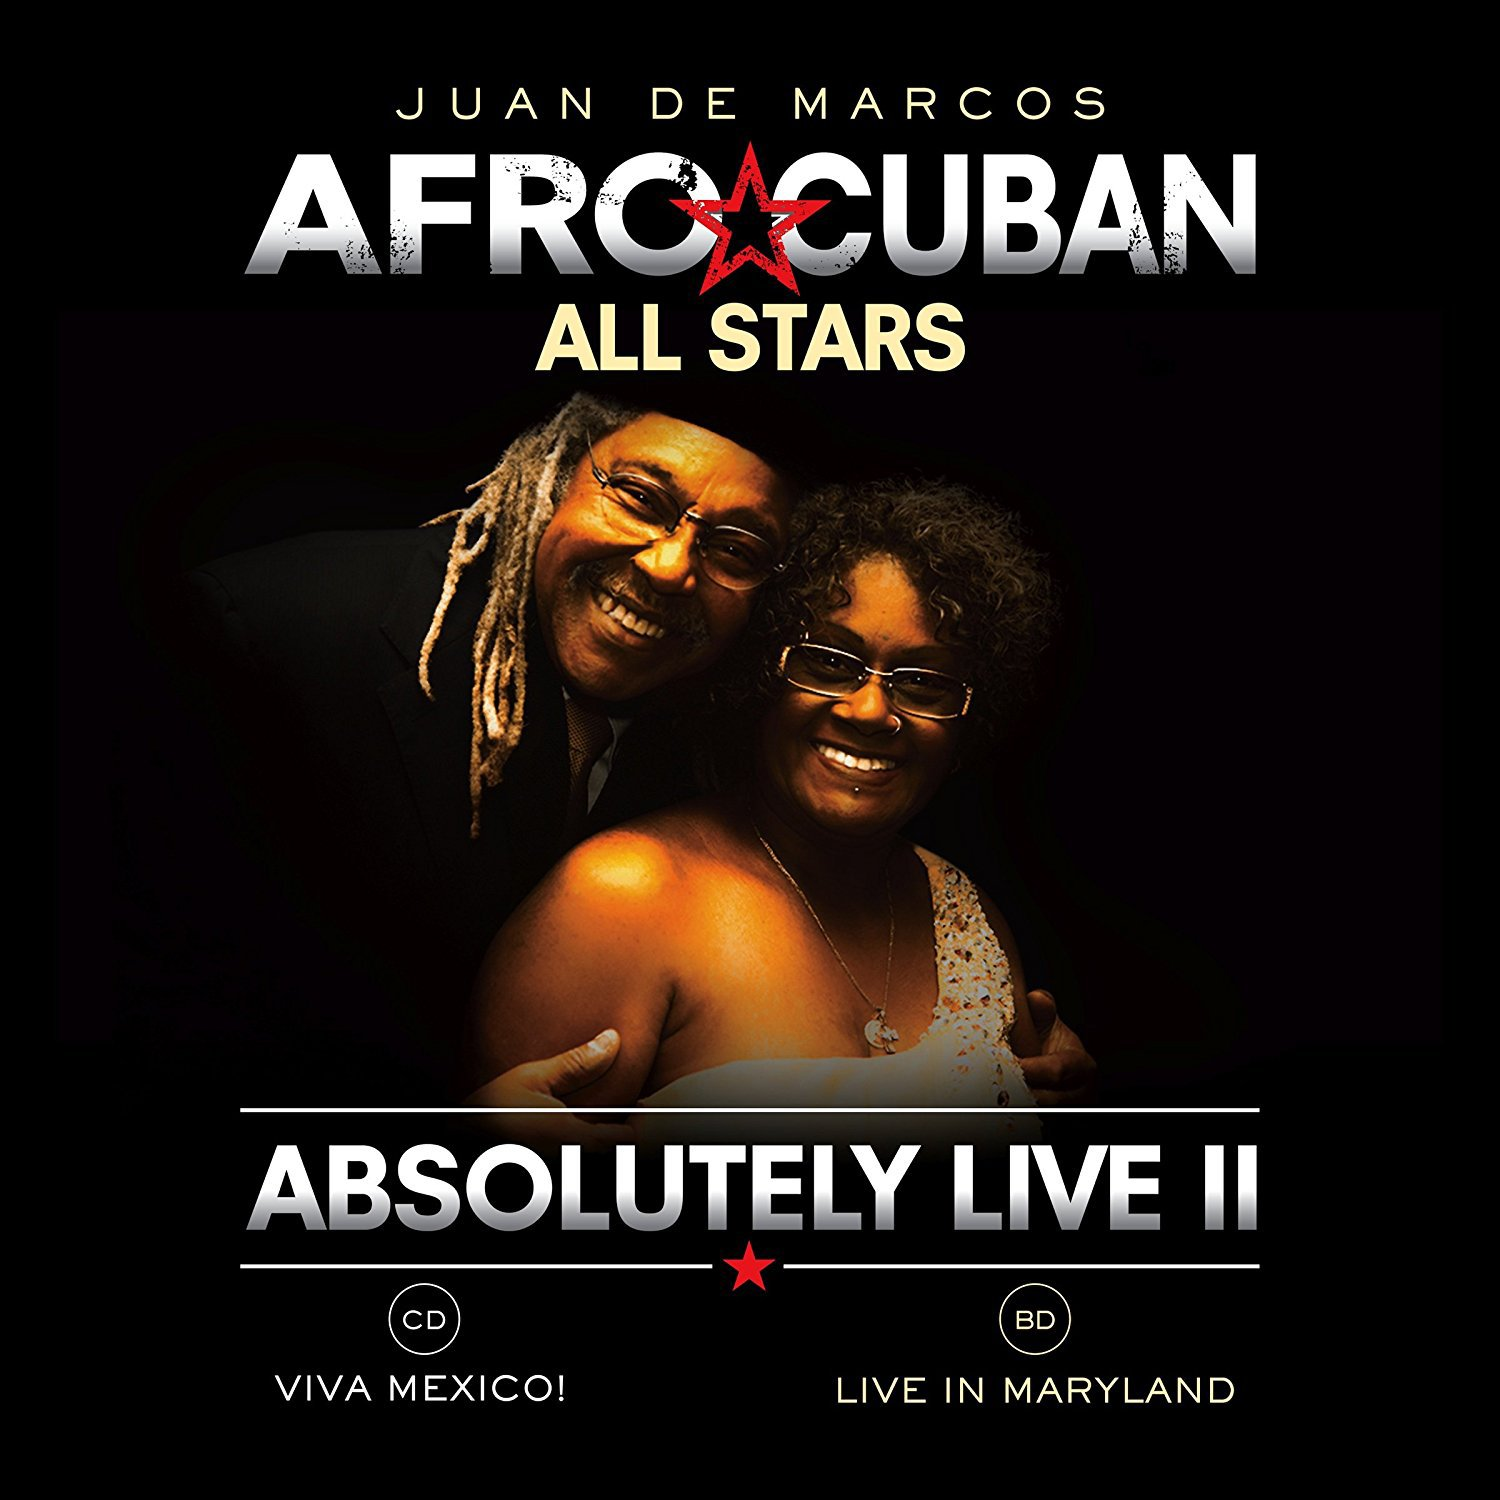 Absolutely Live II CD/Blu-ray